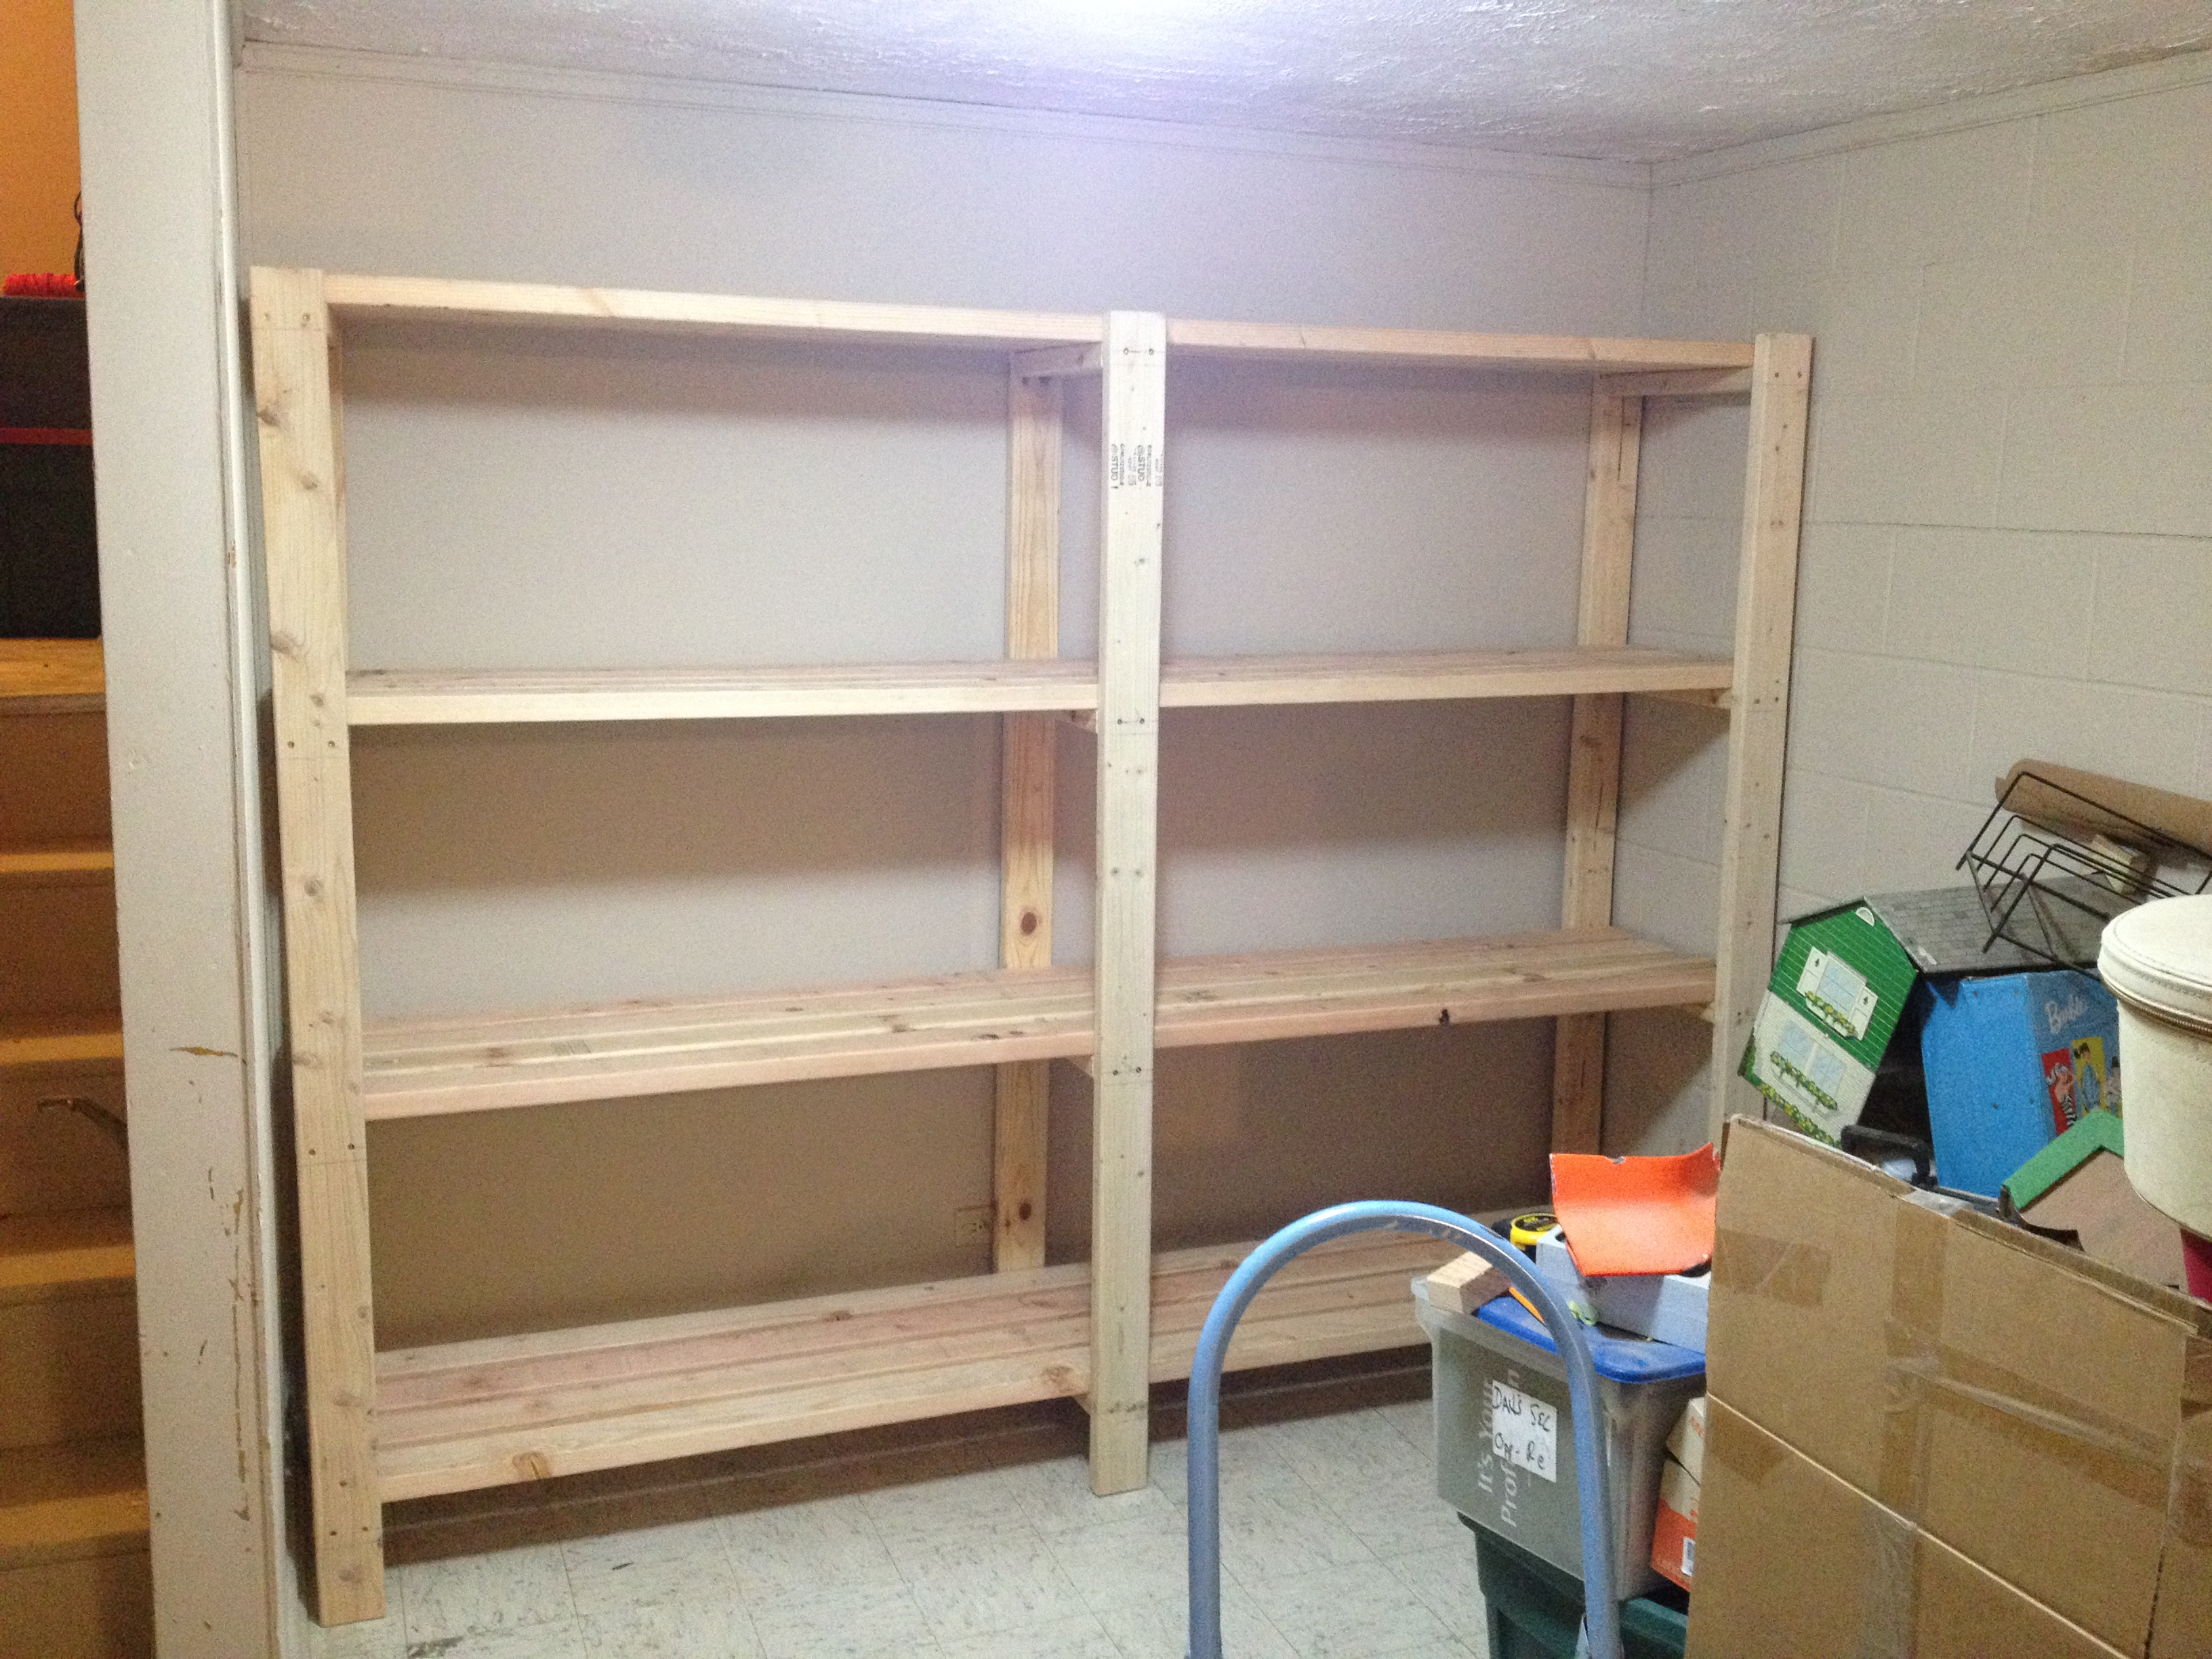 2 X 4 Garage Shelves Built Into Basement Storage!